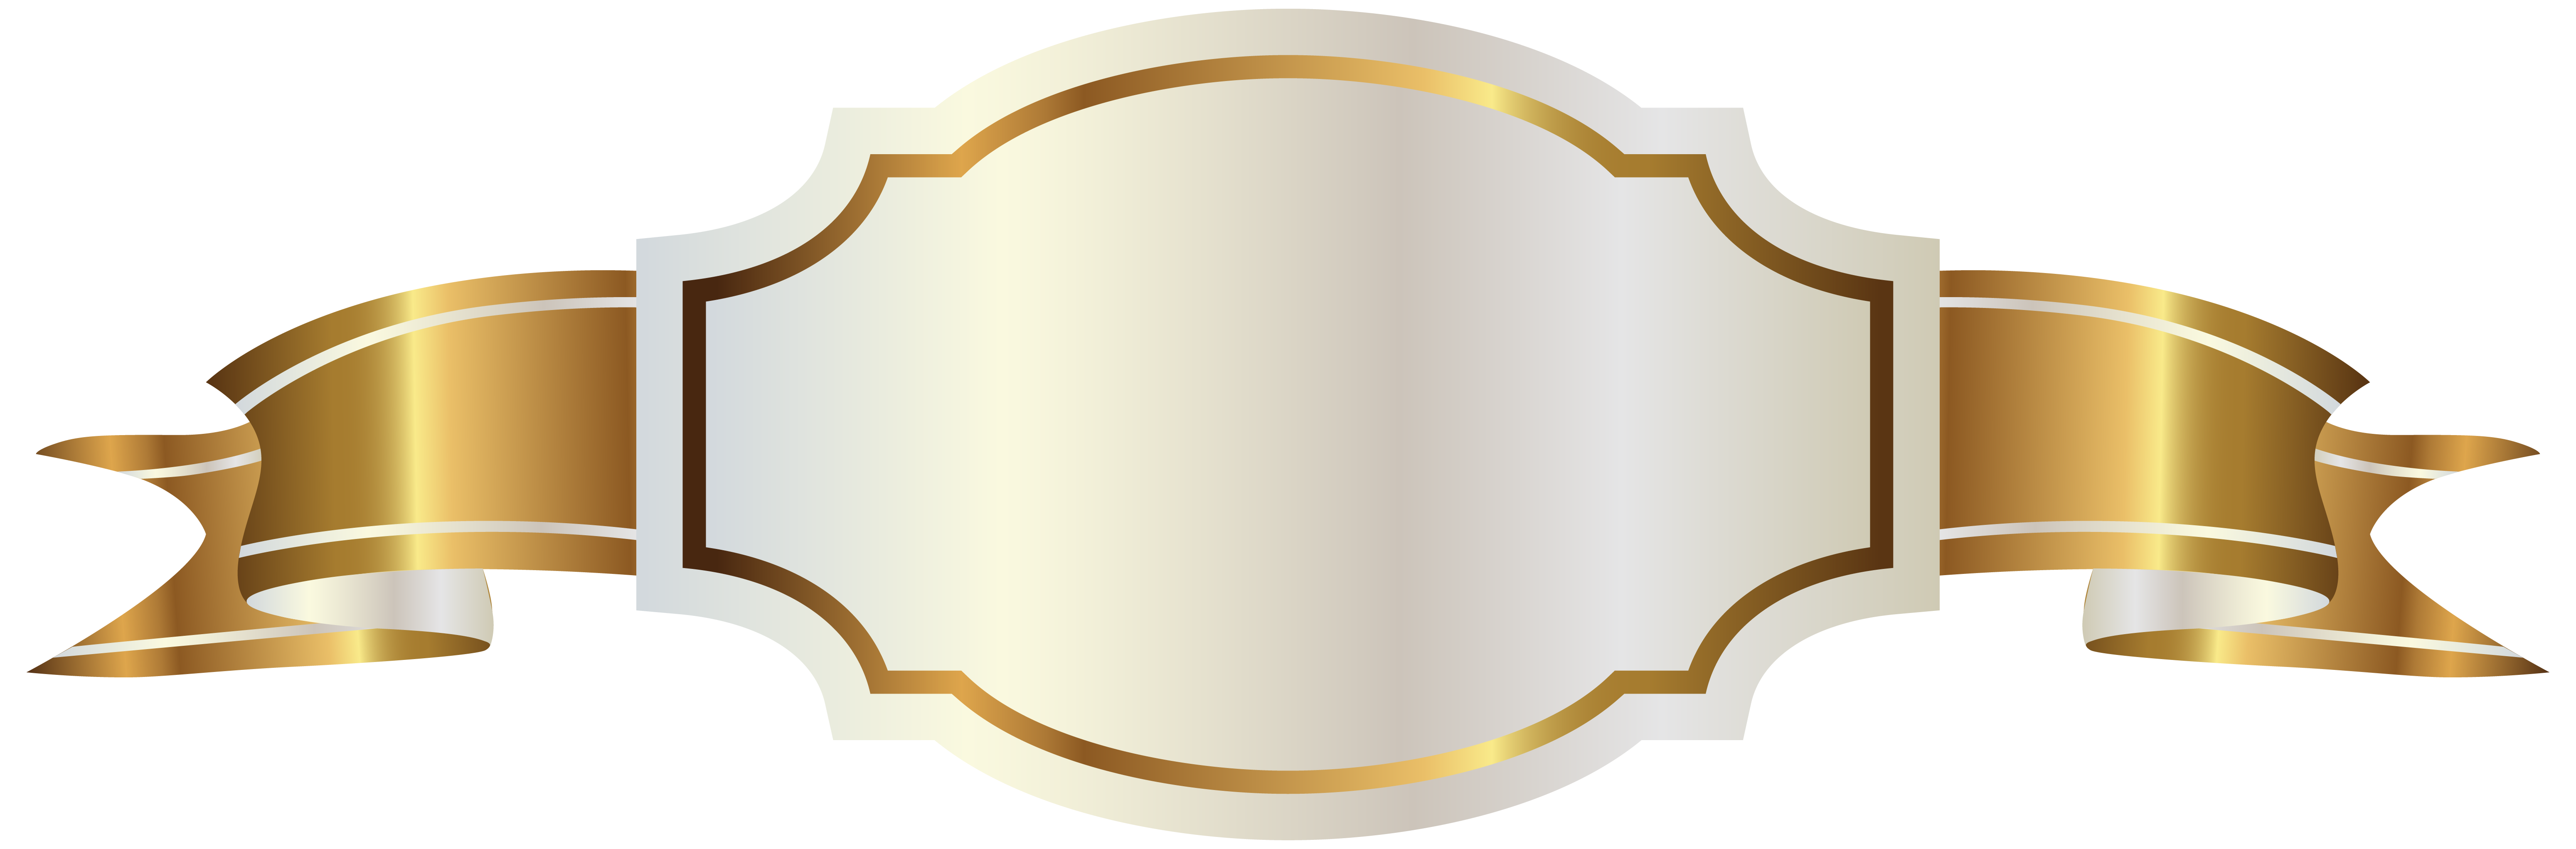 picture transparent library White label clipart. And gold banner png